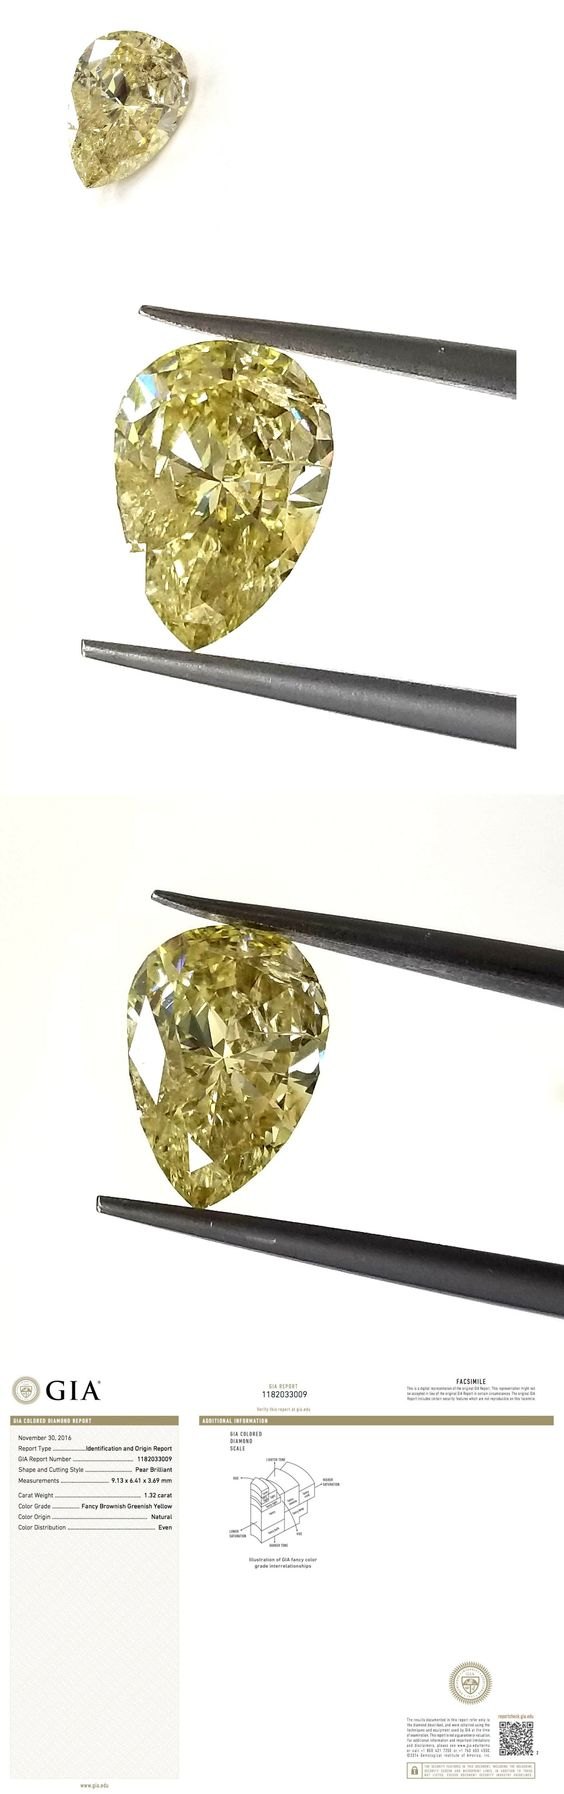 Natural diamonds 3824 gia certified pear cut natural loose natural diamonds 3824 gia certified pear cut natural loose diamond 132ct fancy greenish yellow color buy it now only 1995 on ebay nvjuhfo Gallery